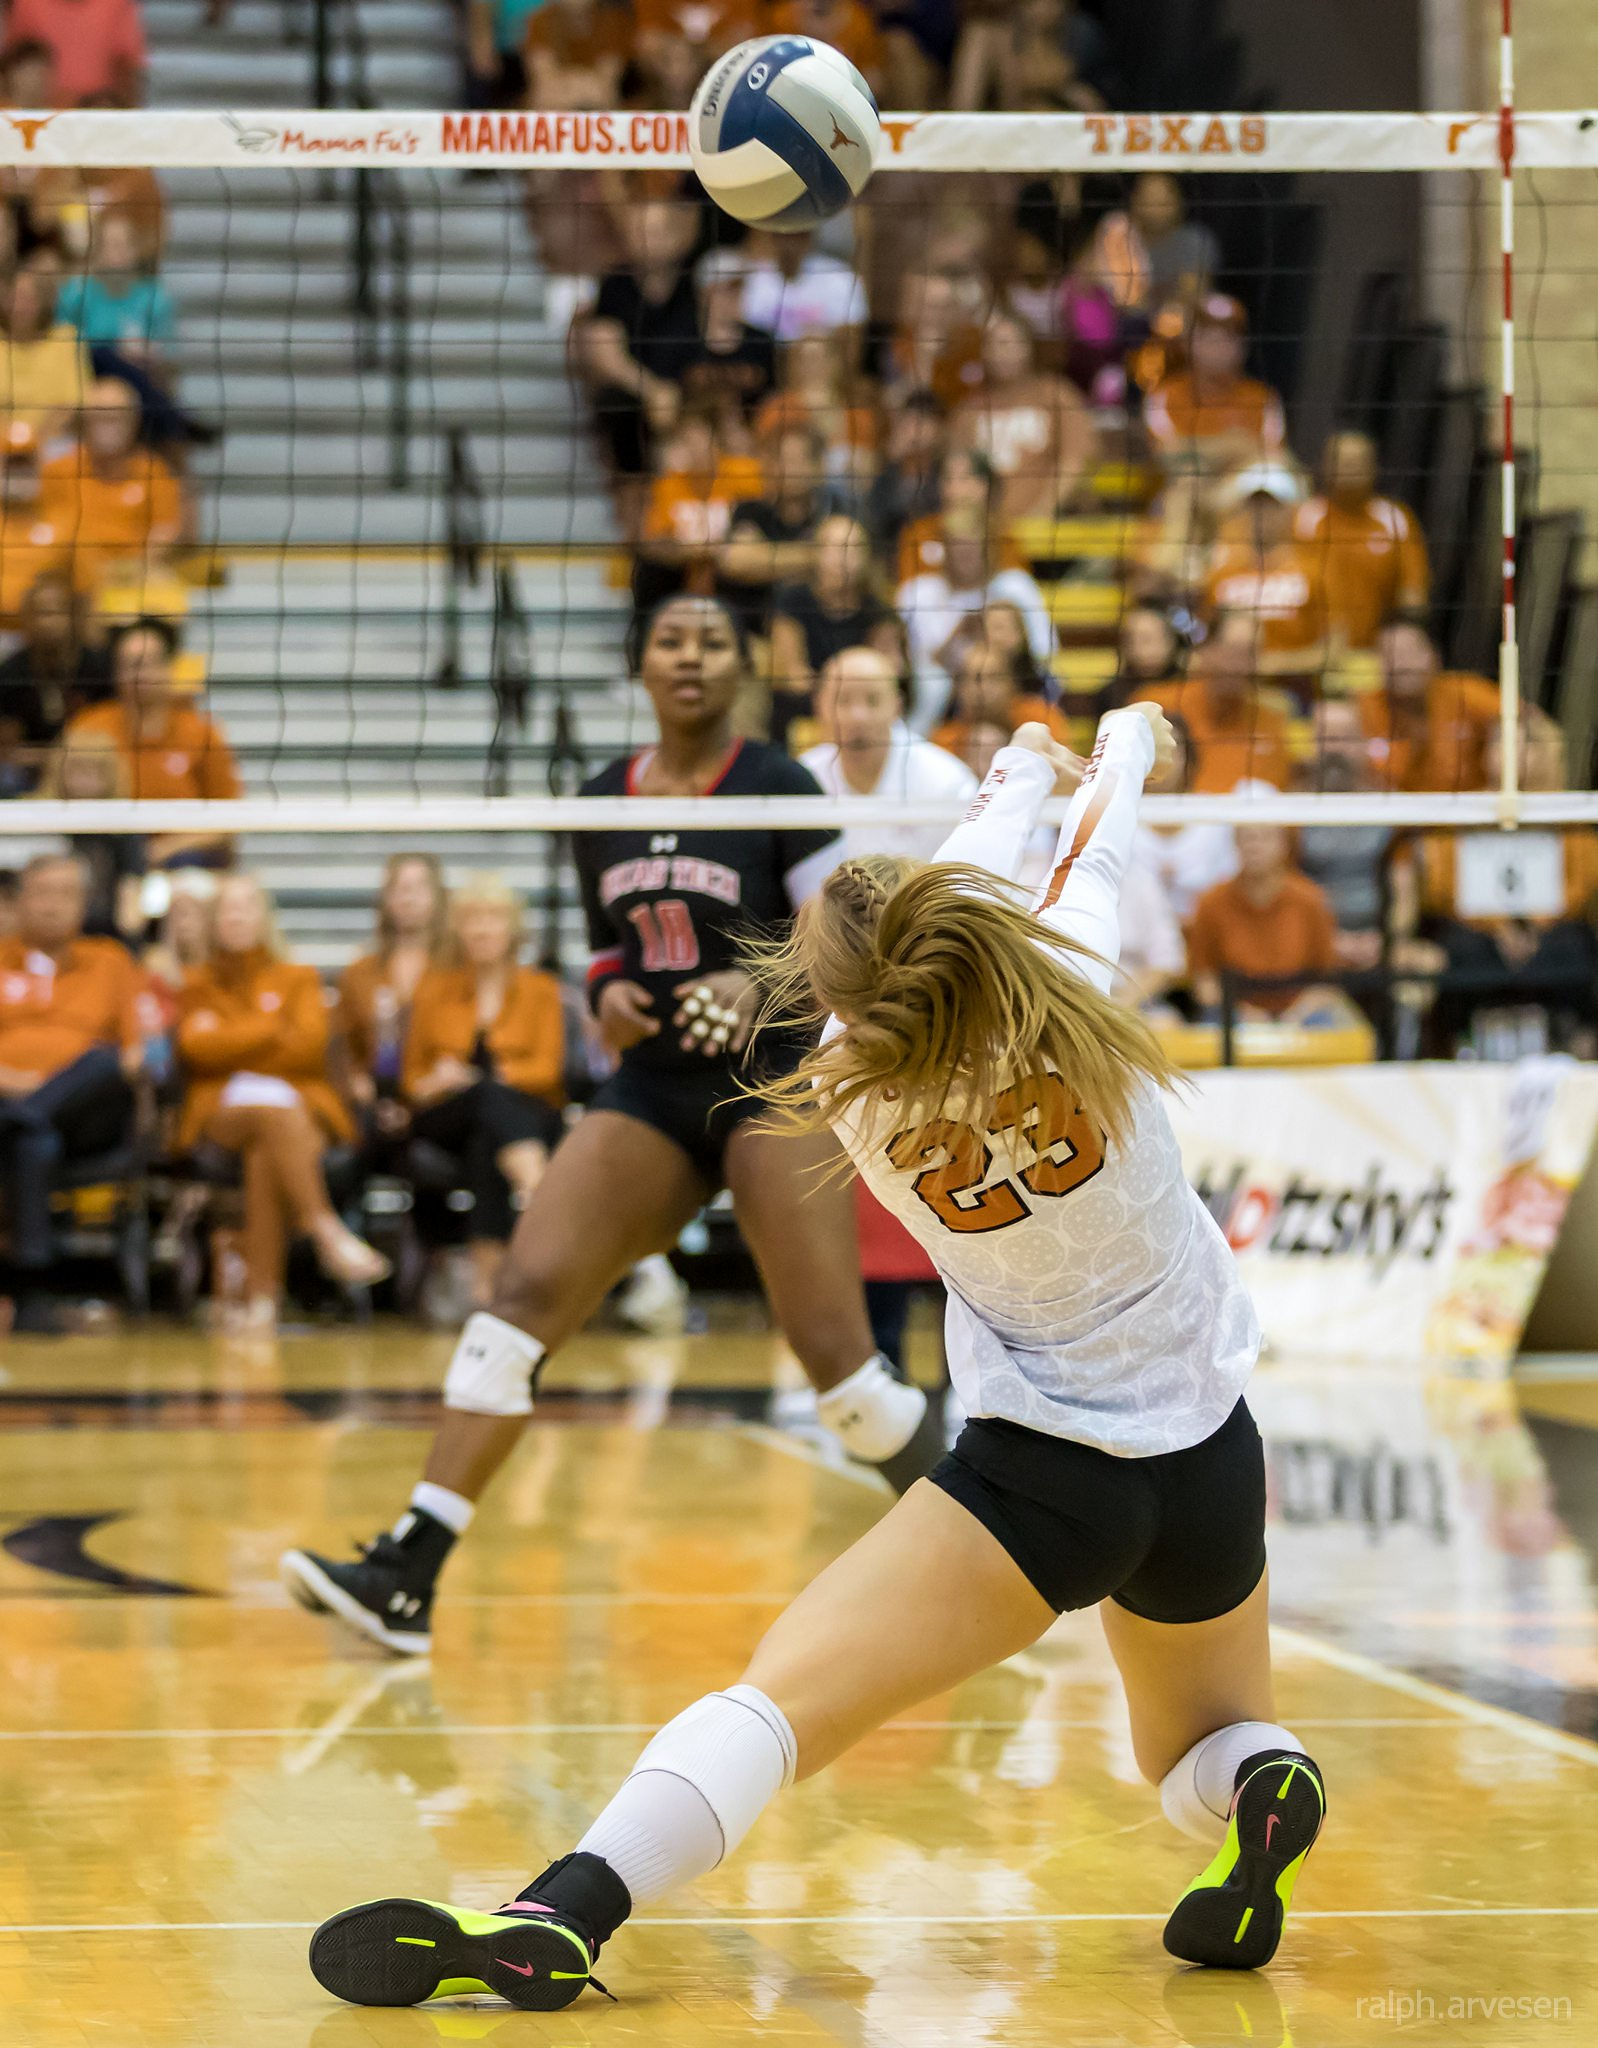 The dig is the second and last line of defense for a team to try and keep an opposing team's attack hits from scoring points by keep the ball off the floor. (Ralph Aversen)